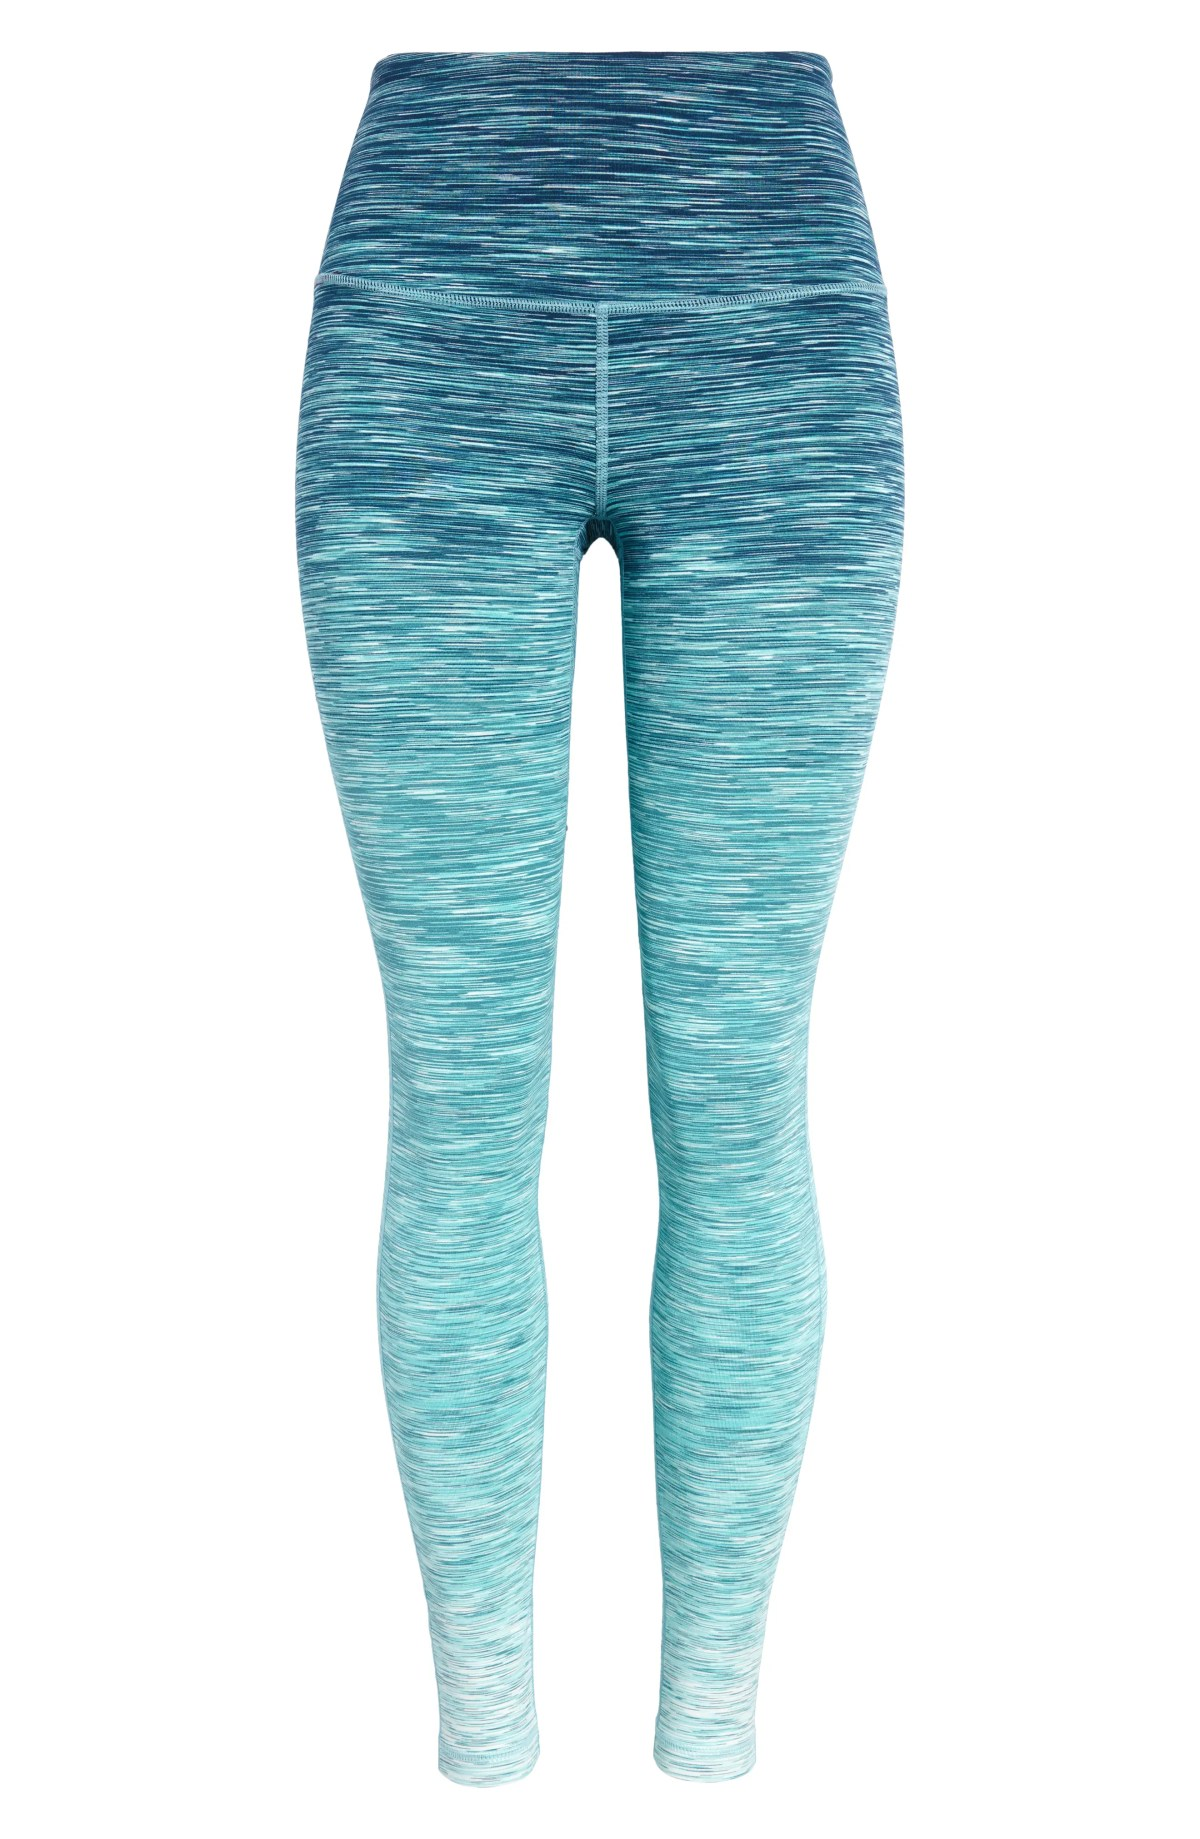 ZELLA Live In High Waist Leggings, Main, color, BLUE CERAMIC GRADIENT SPACEDYE